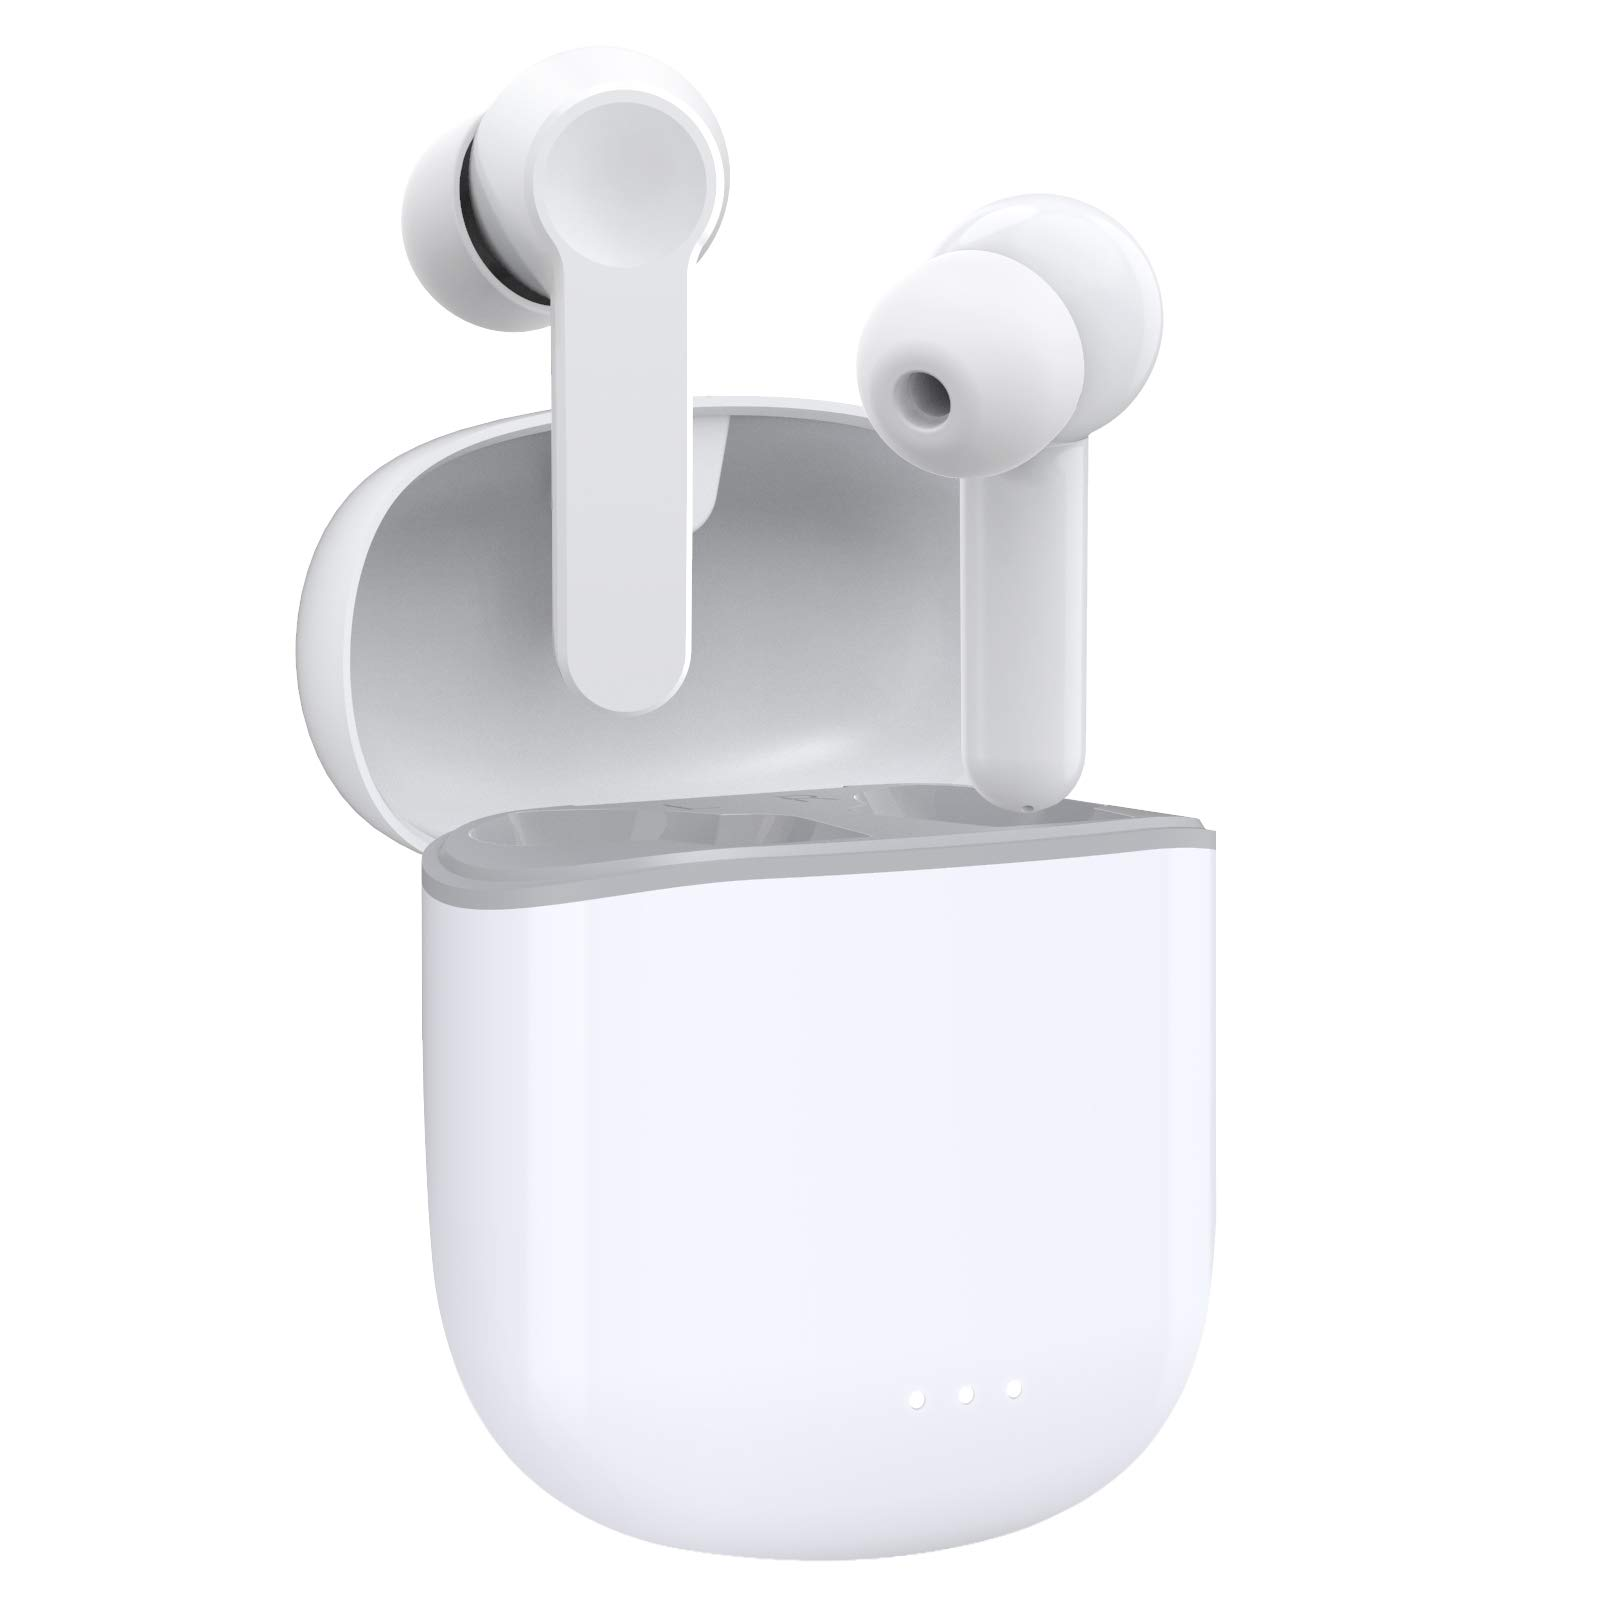 Auriculares Earbuds Inalambricos Otium Waterproof IPX6 A,Whi